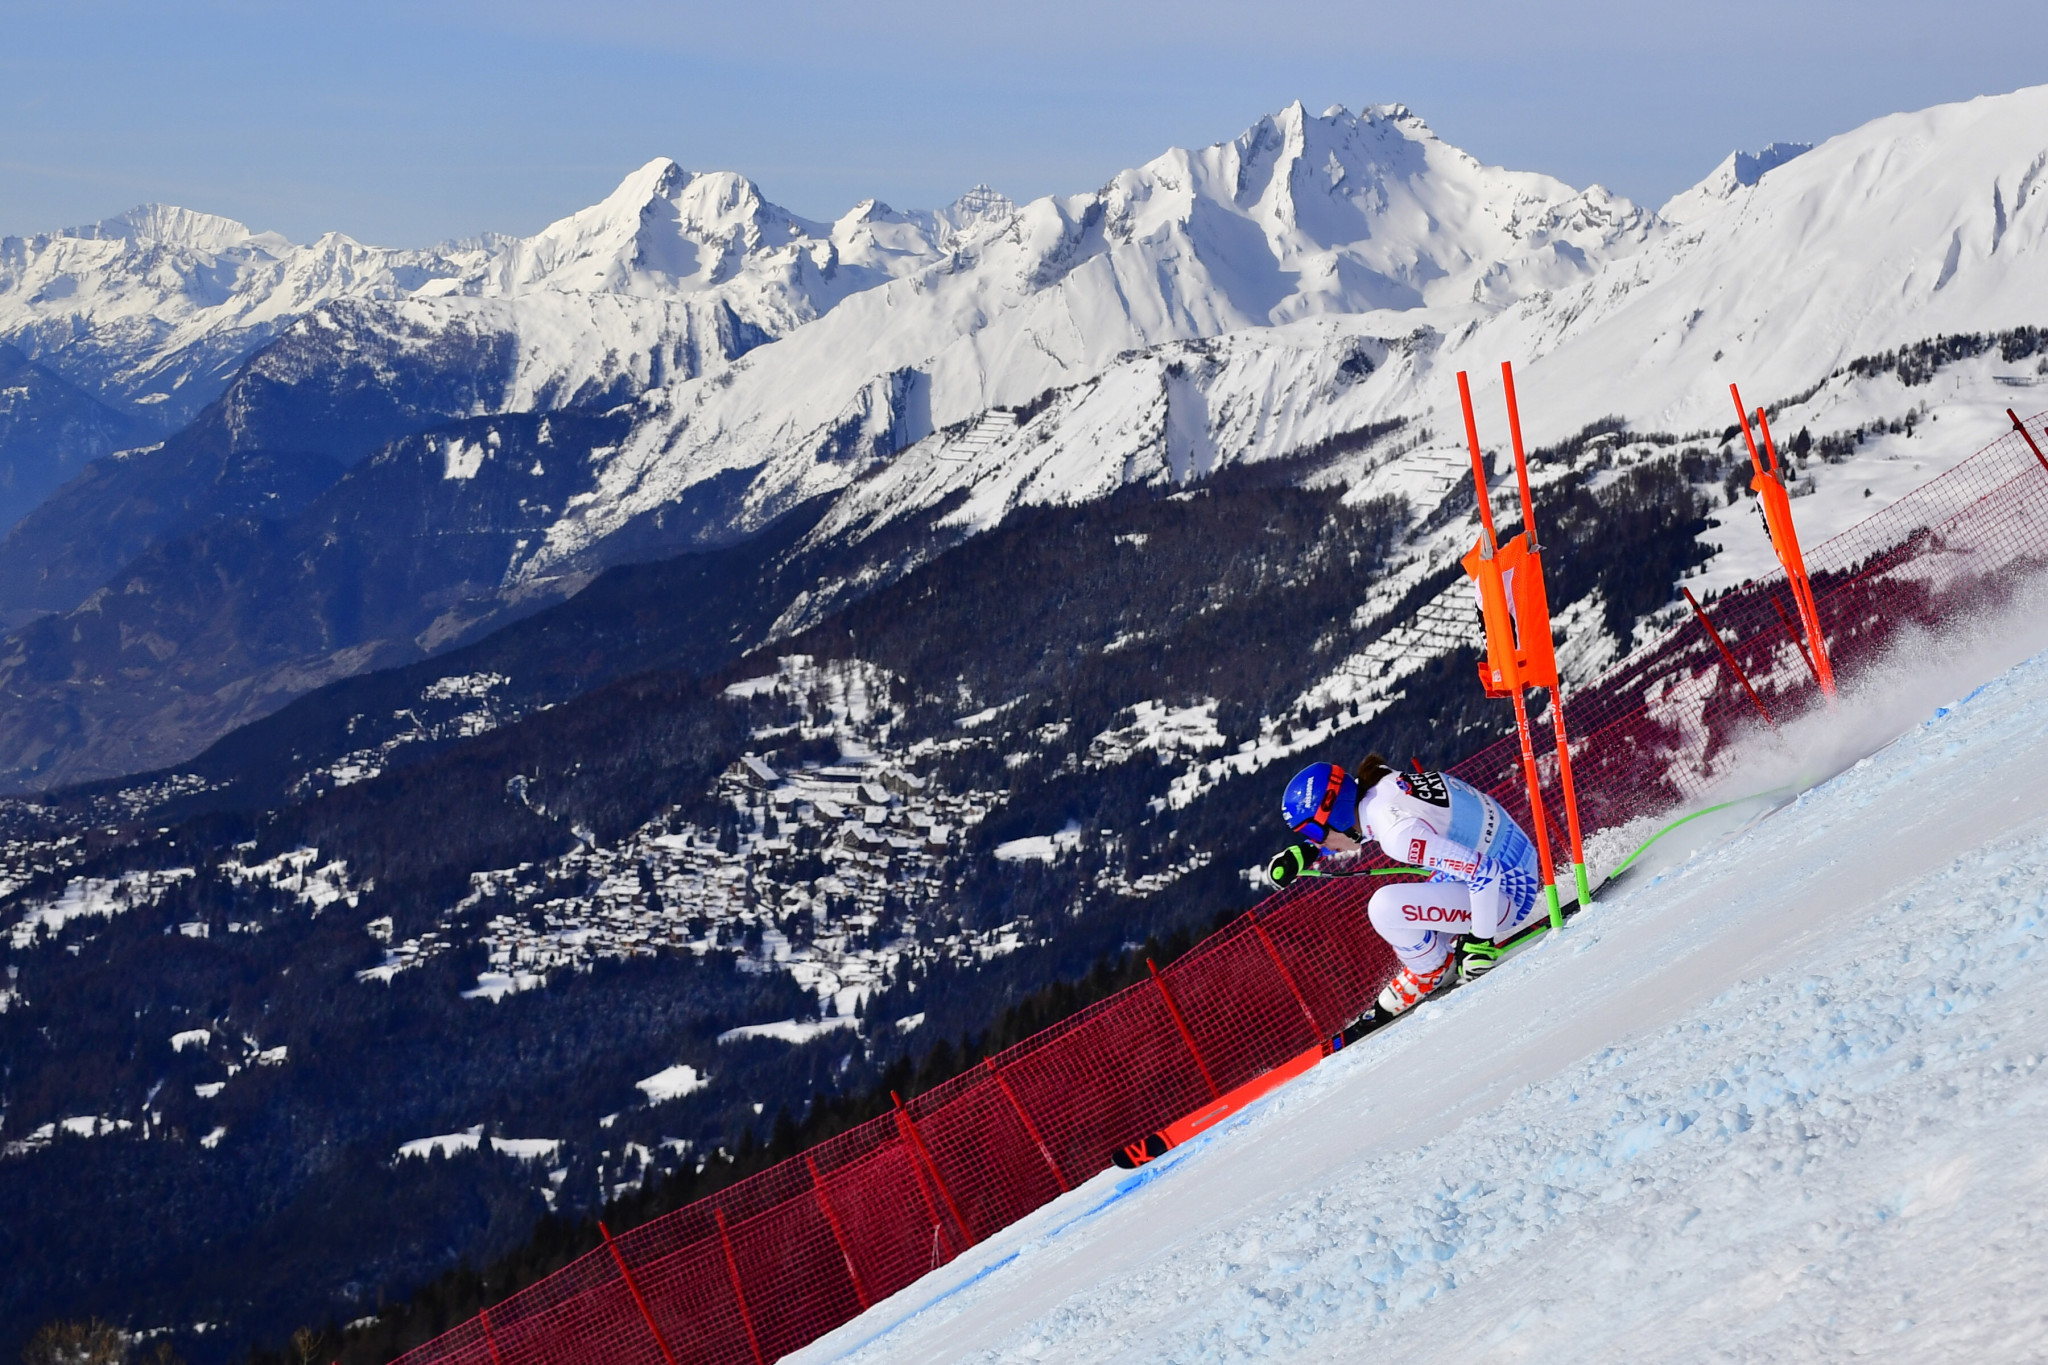 Slovakia's Petra Vlhová recorded a career-best downhill result by finishing fourth ©Getty Images